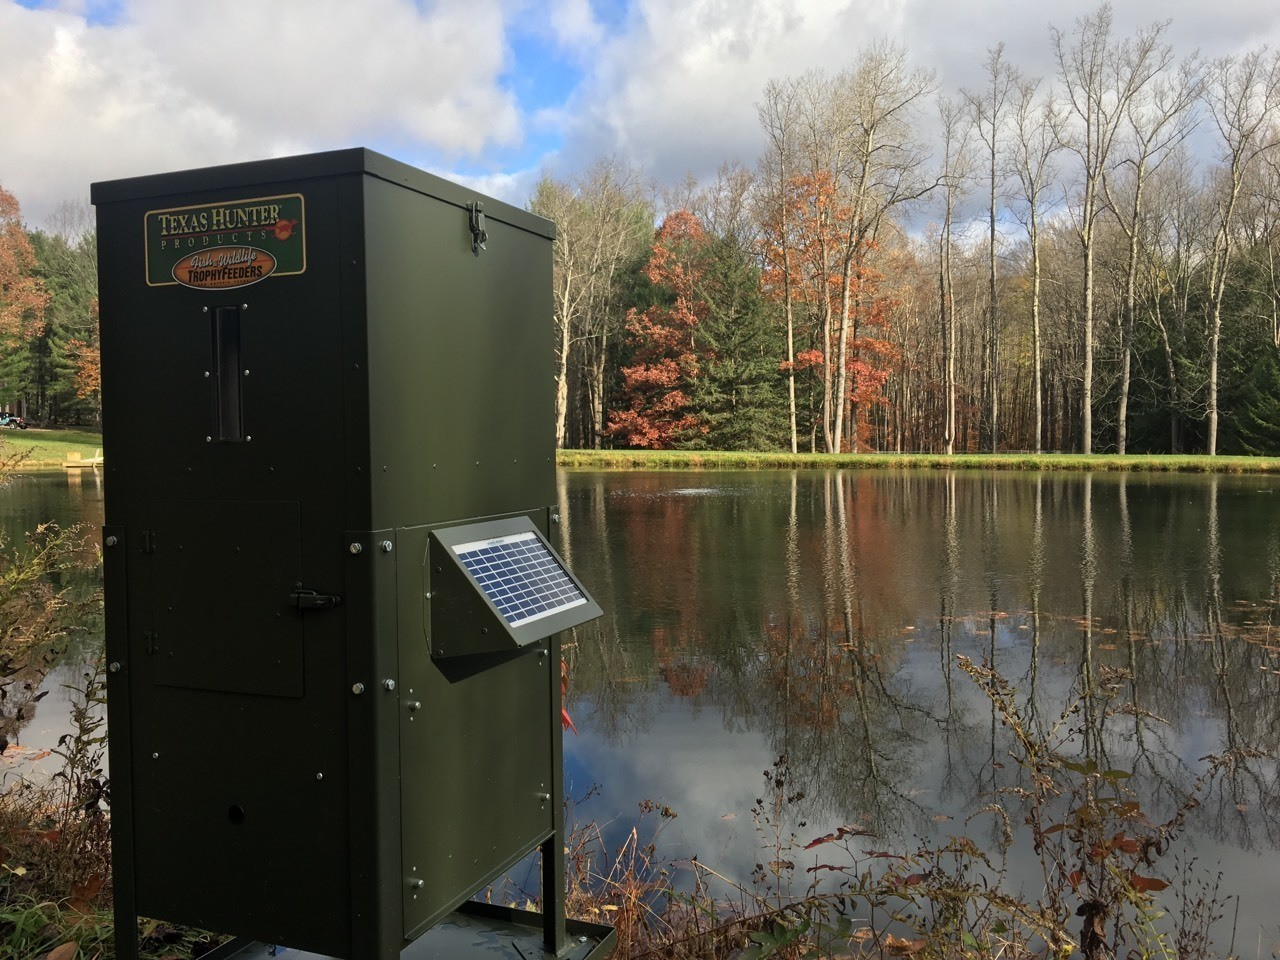 Texas Hunter brand fish and wildlife feeders are available in a wide range of sizes and styles. This fish feeder is installed on a private lake in Ligonier Pennsylvania.